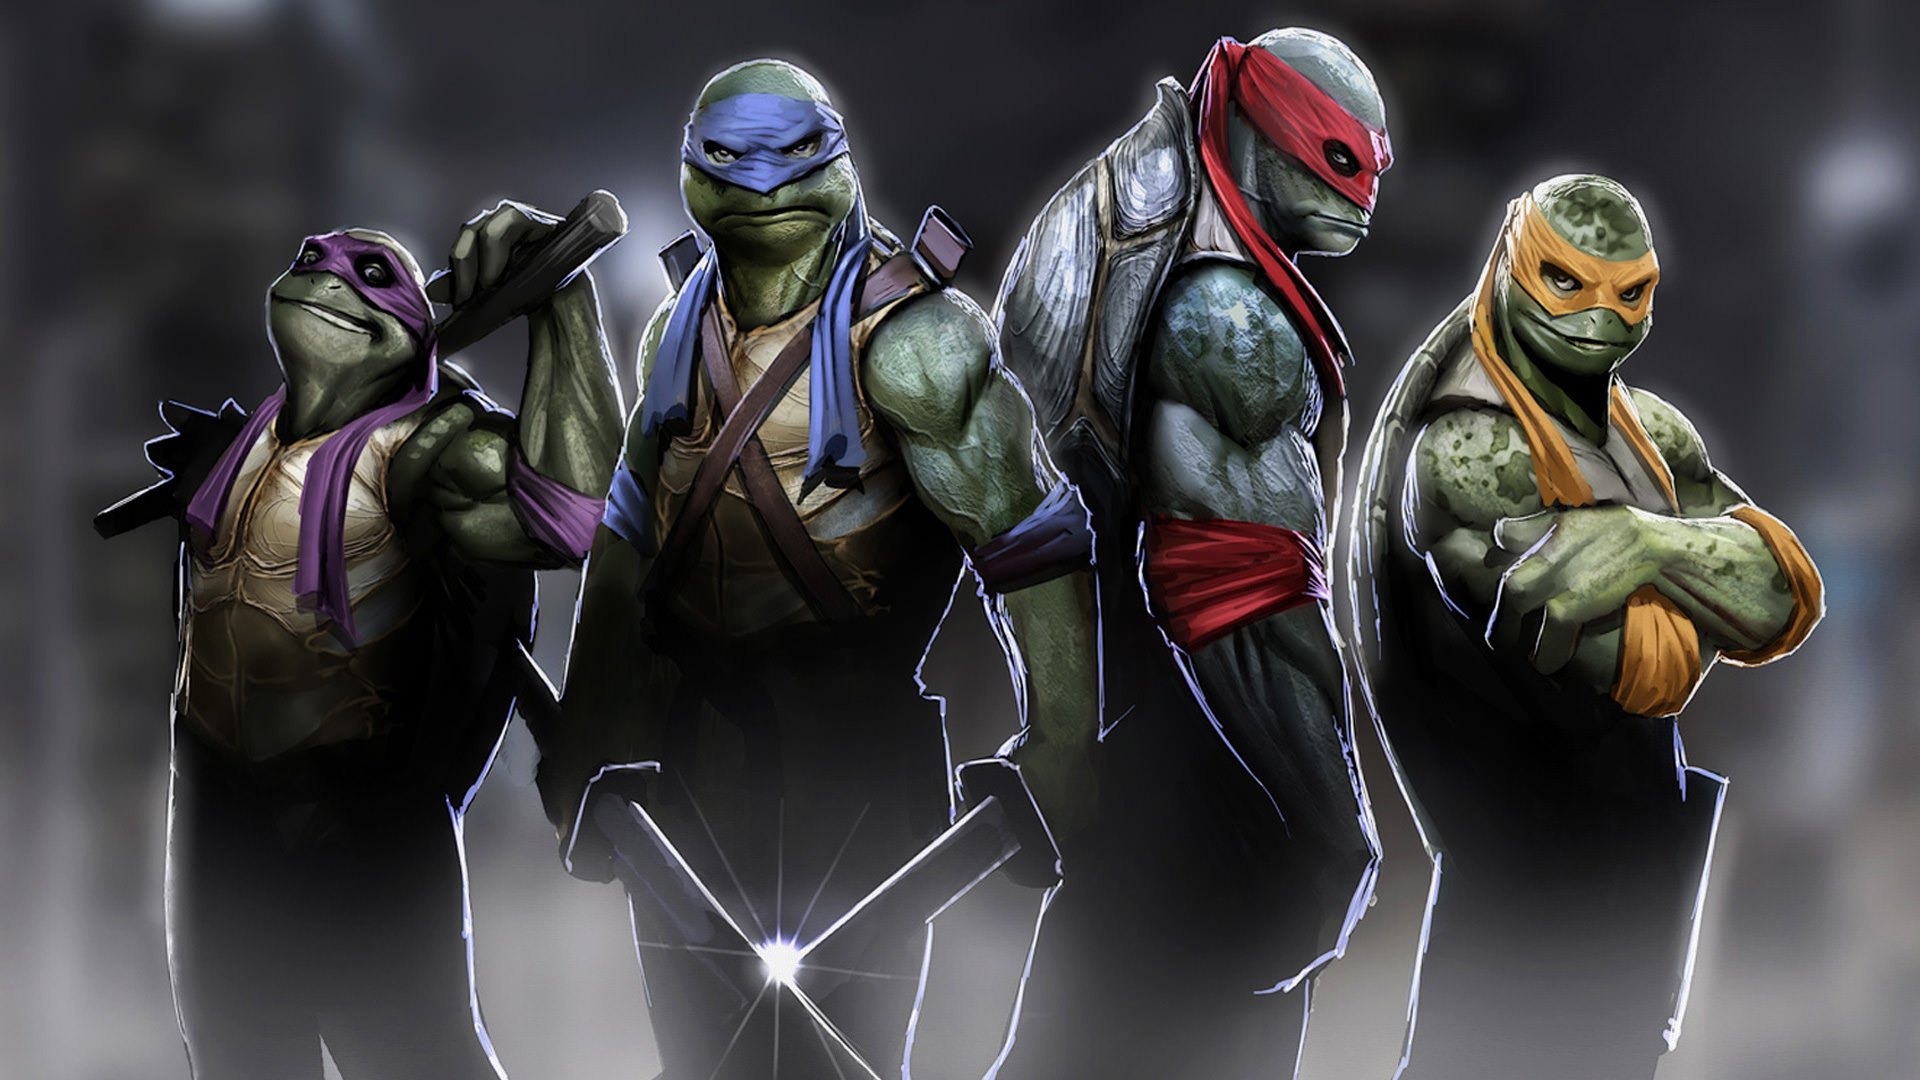 Create Your Own Ninja Turtles Wallpaper design ideas for your computer